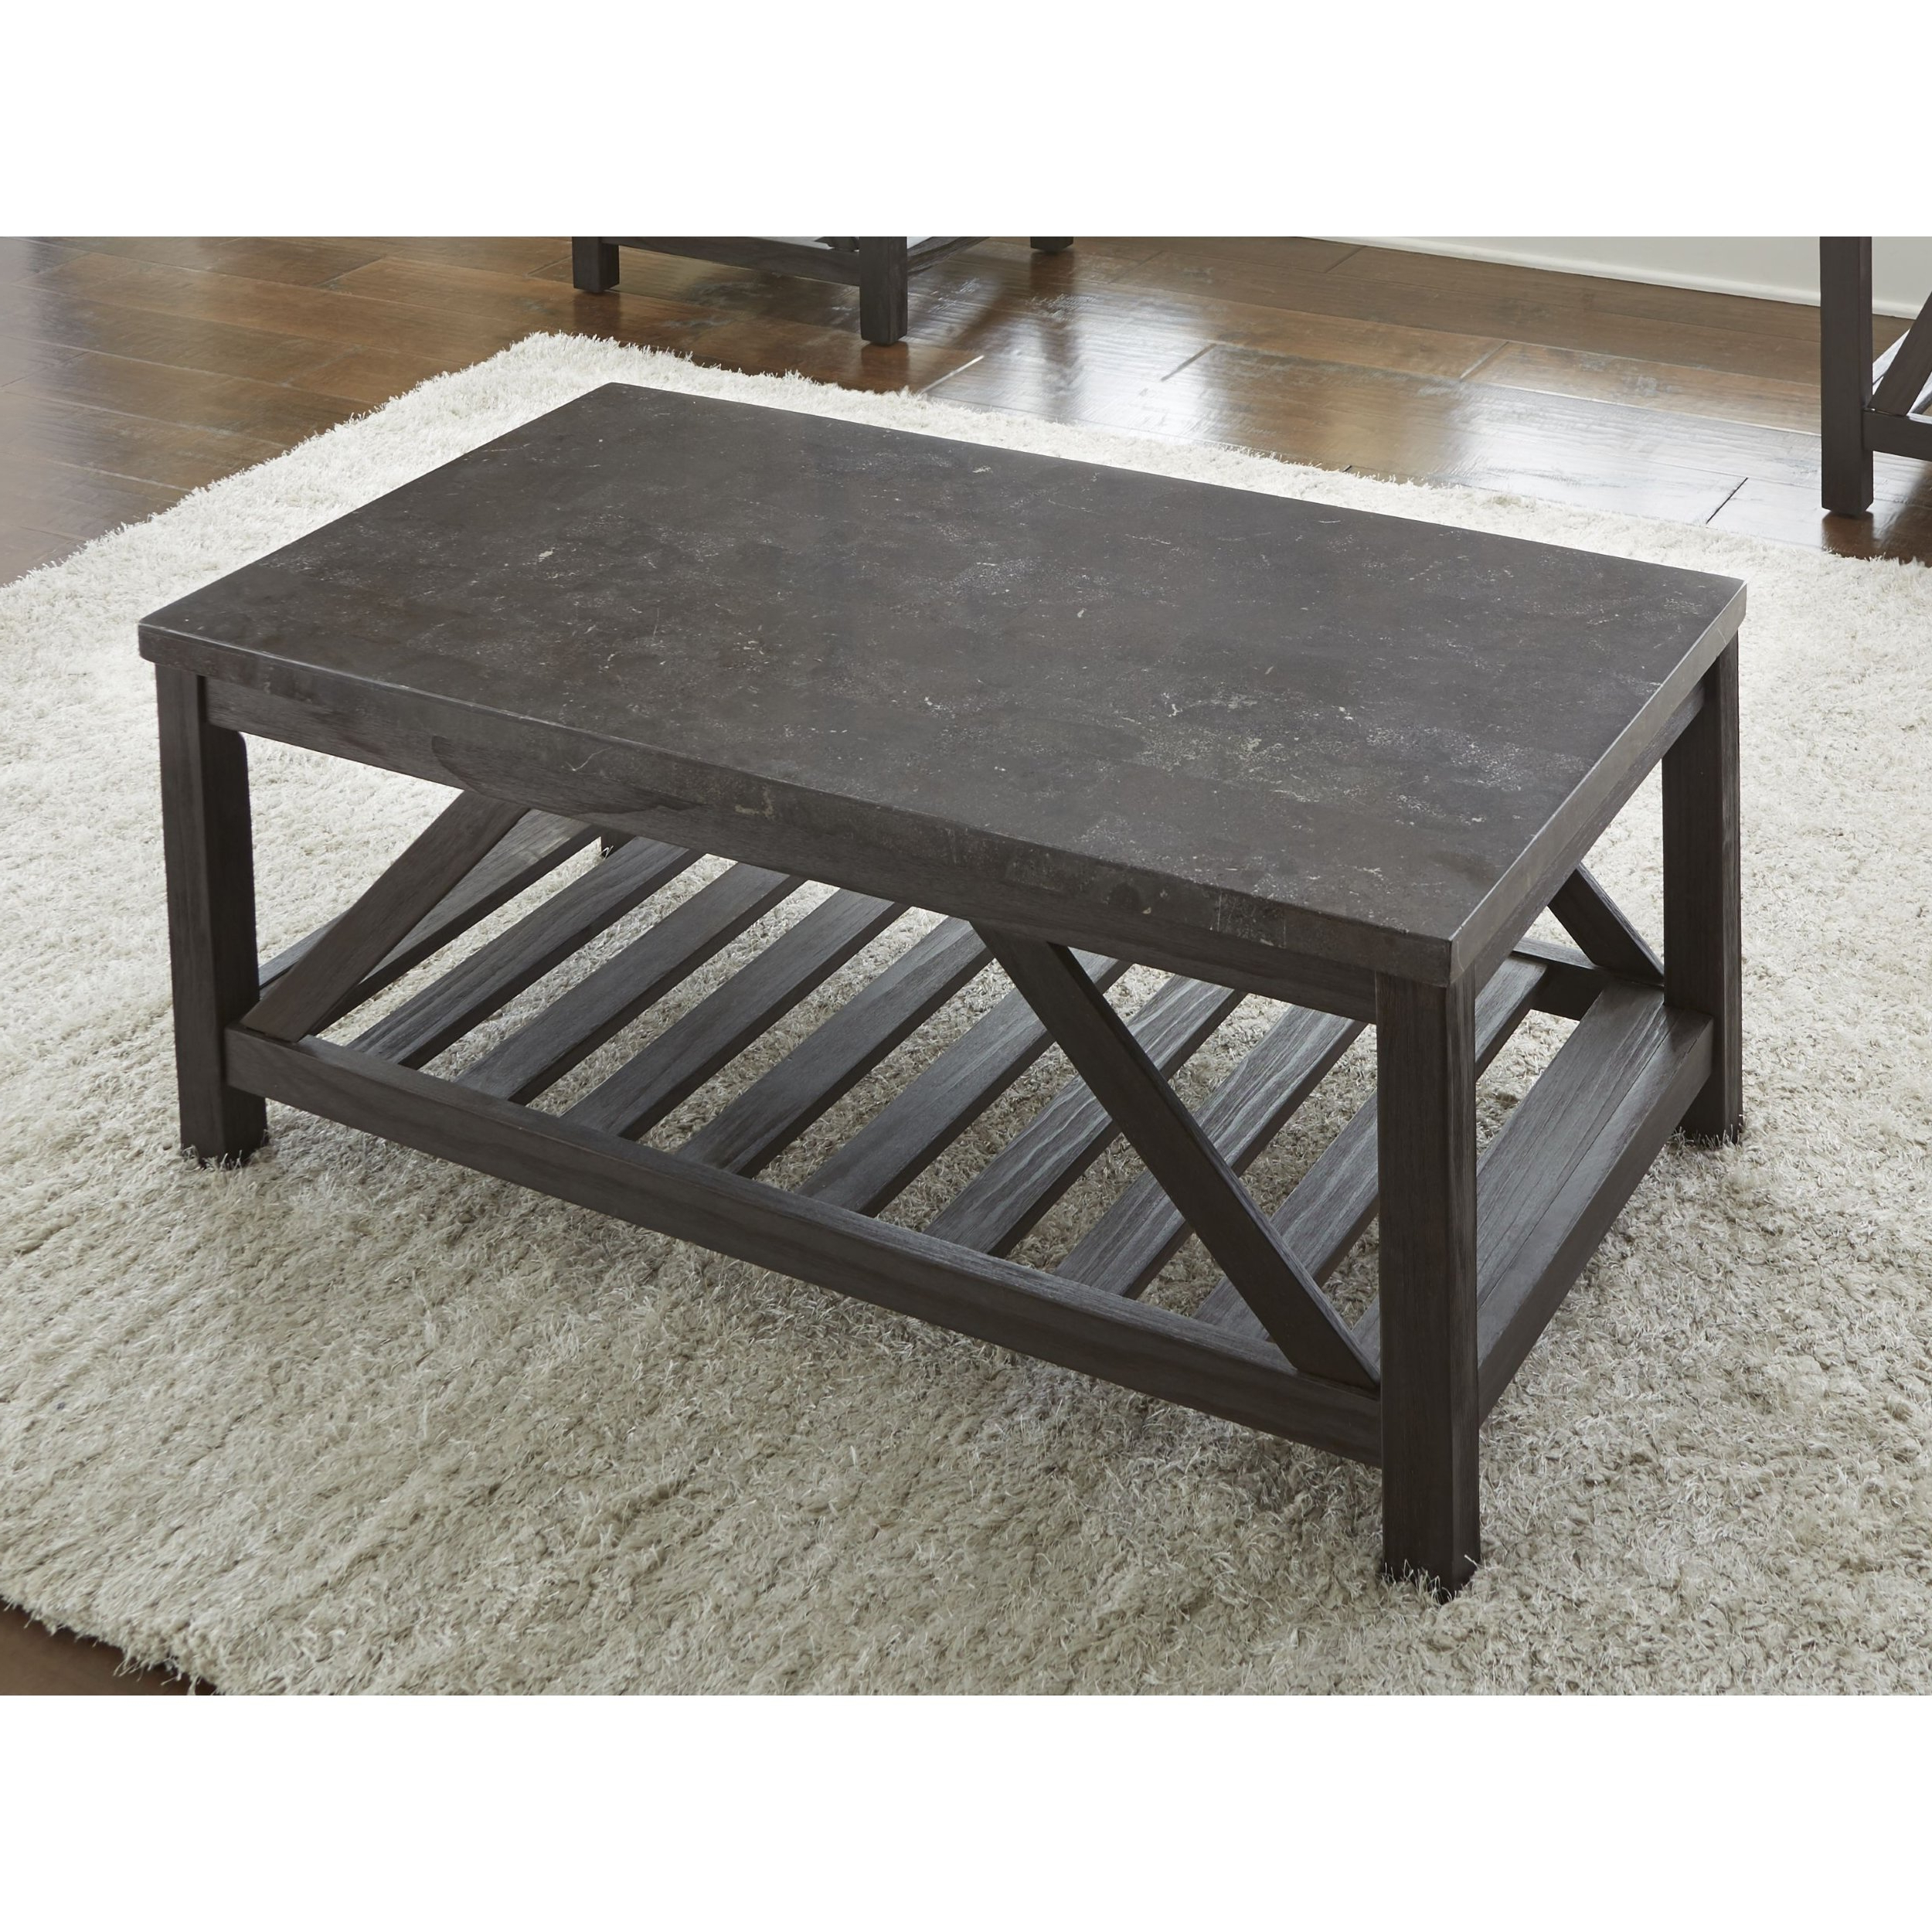 Shop New Badin 48 Inch Rectangle Coffee Table With Bluestone Top Regarding 2018 Bluestone Rustic Black Coffee Tables (View 6 of 20)